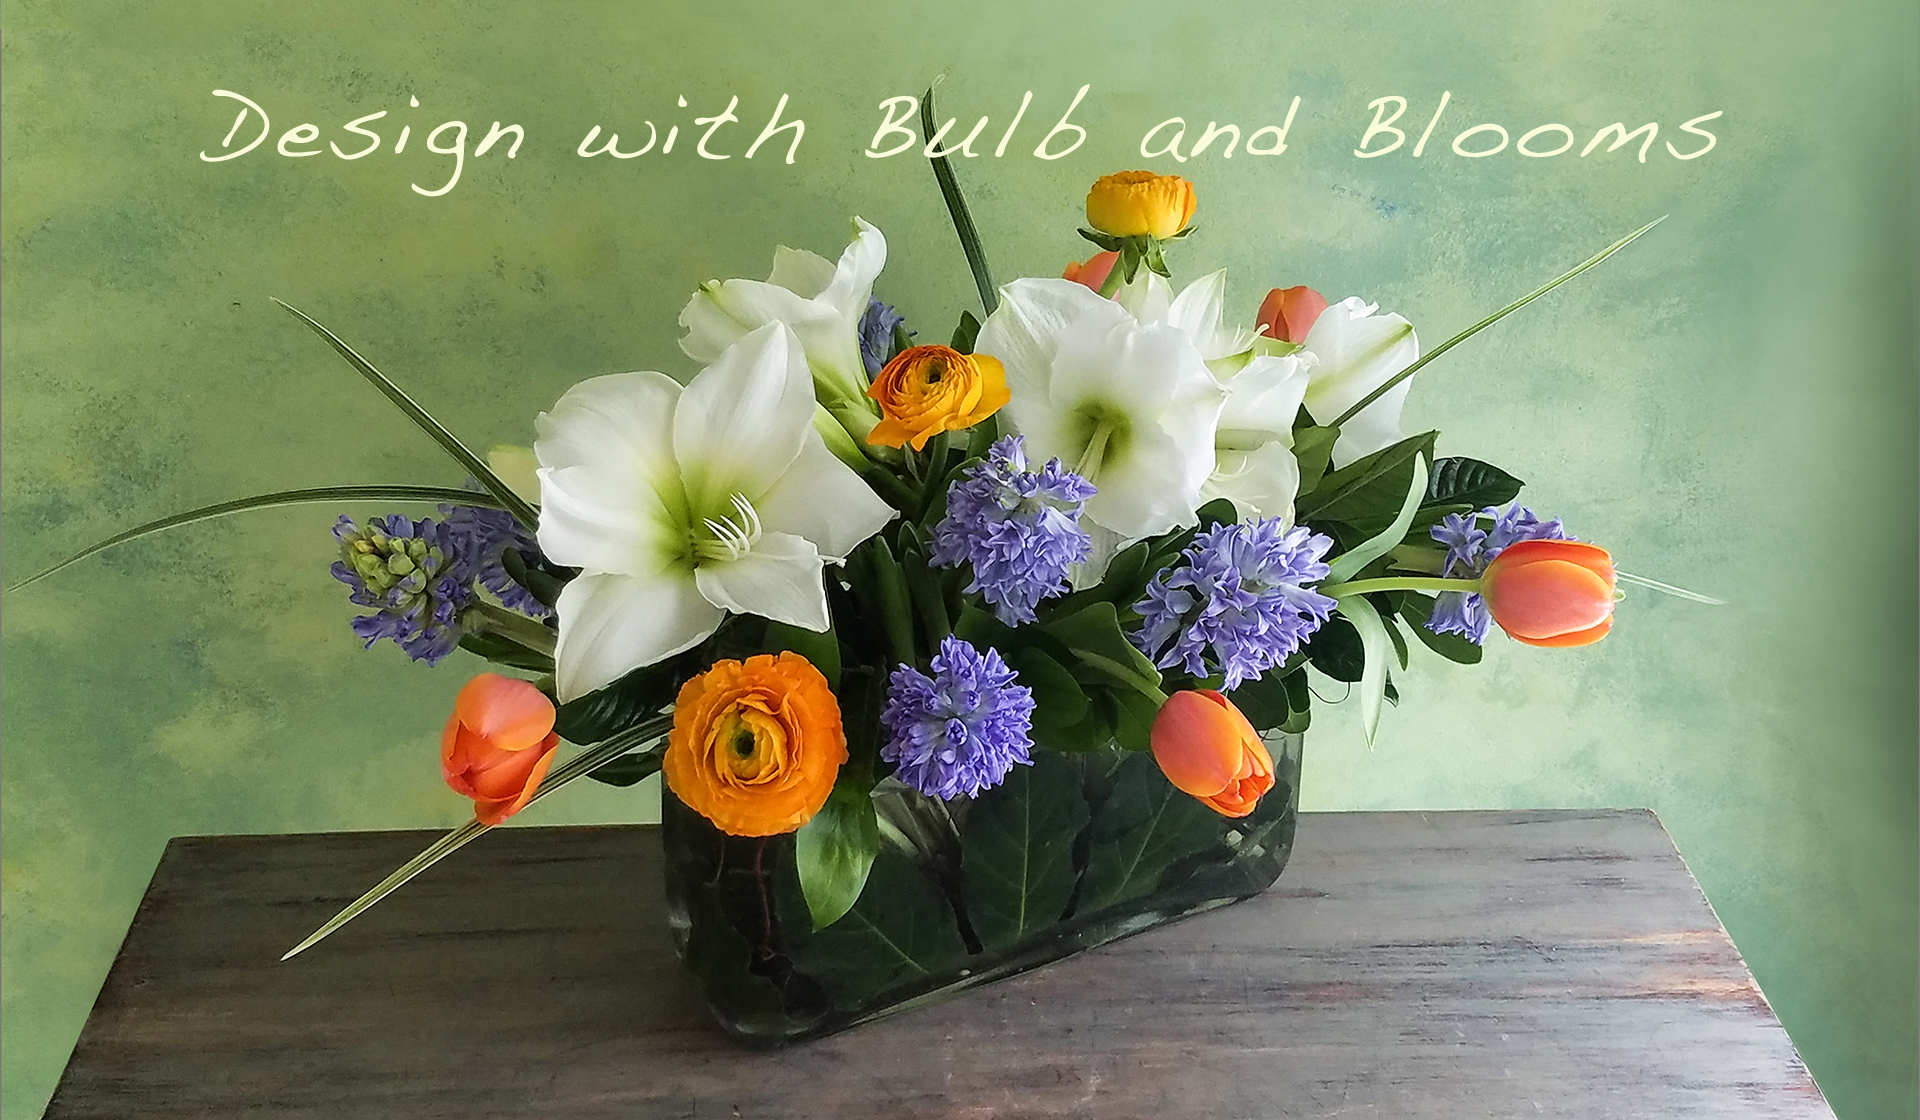 Early spring flowers designing with bulbs and blooms robin wood early spring flowers designing with bulbs and blooms mightylinksfo